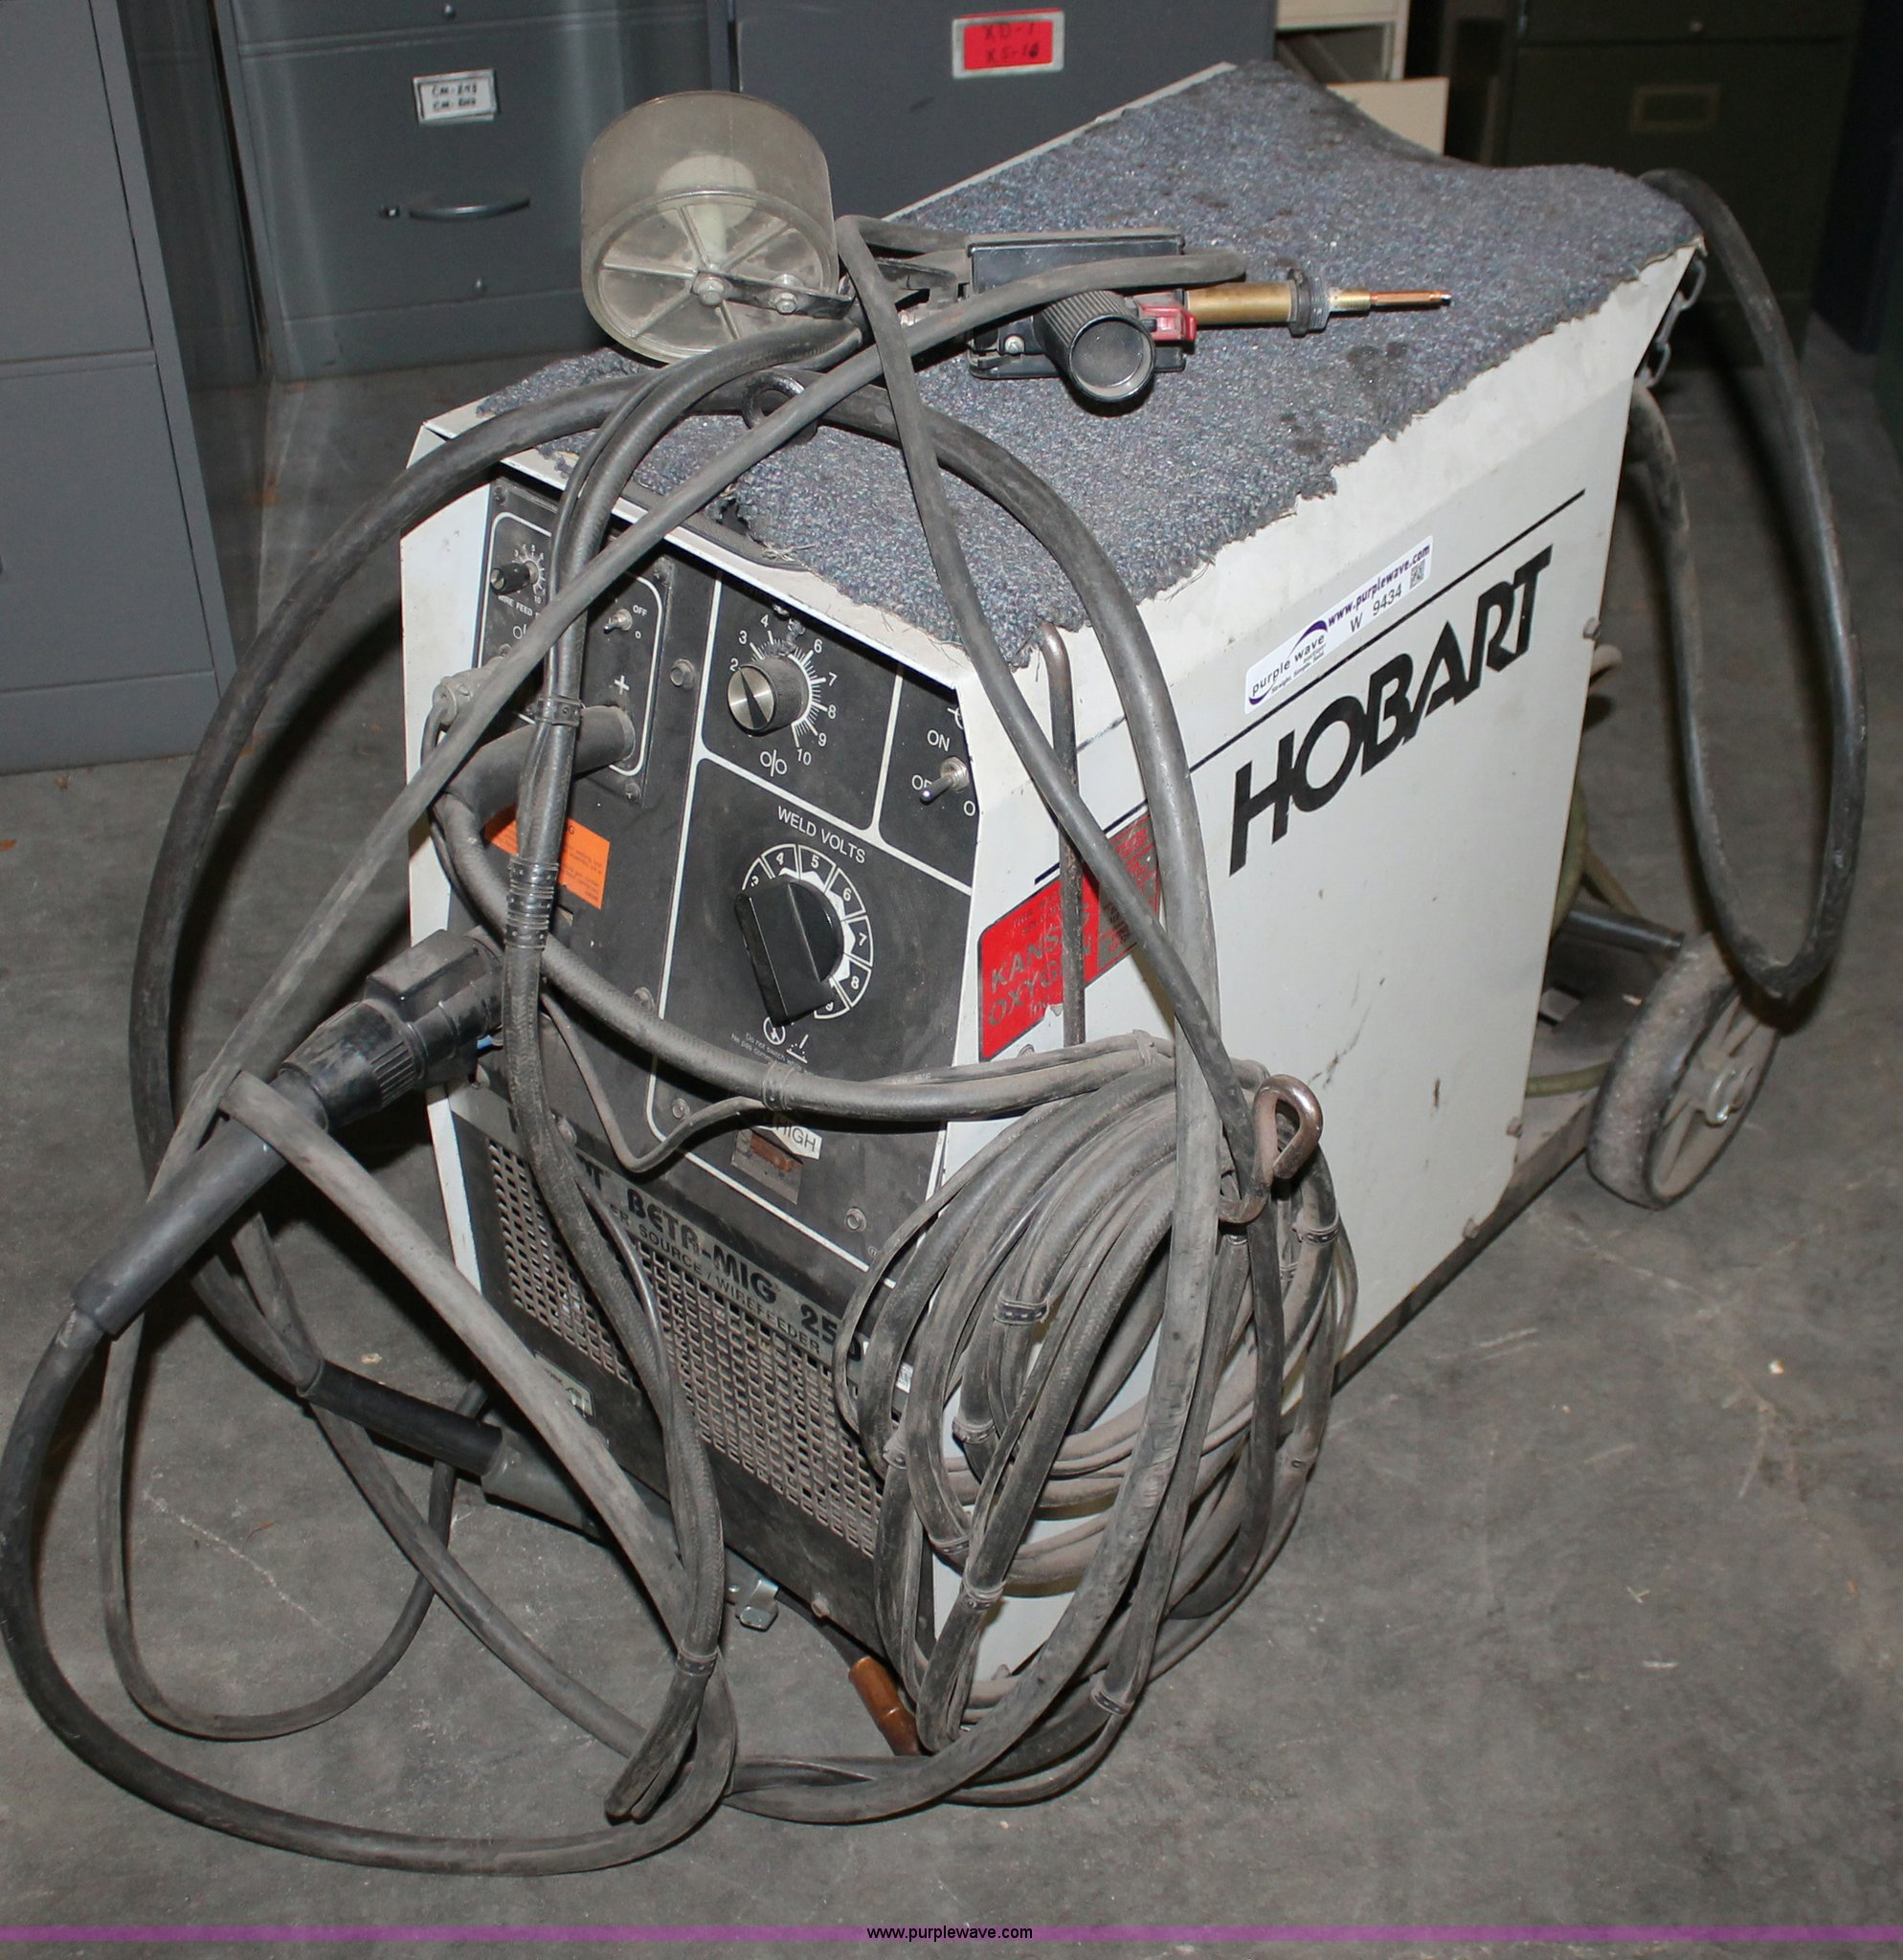 W9434 hobart beta mig 250 cv power source wire feed welder item